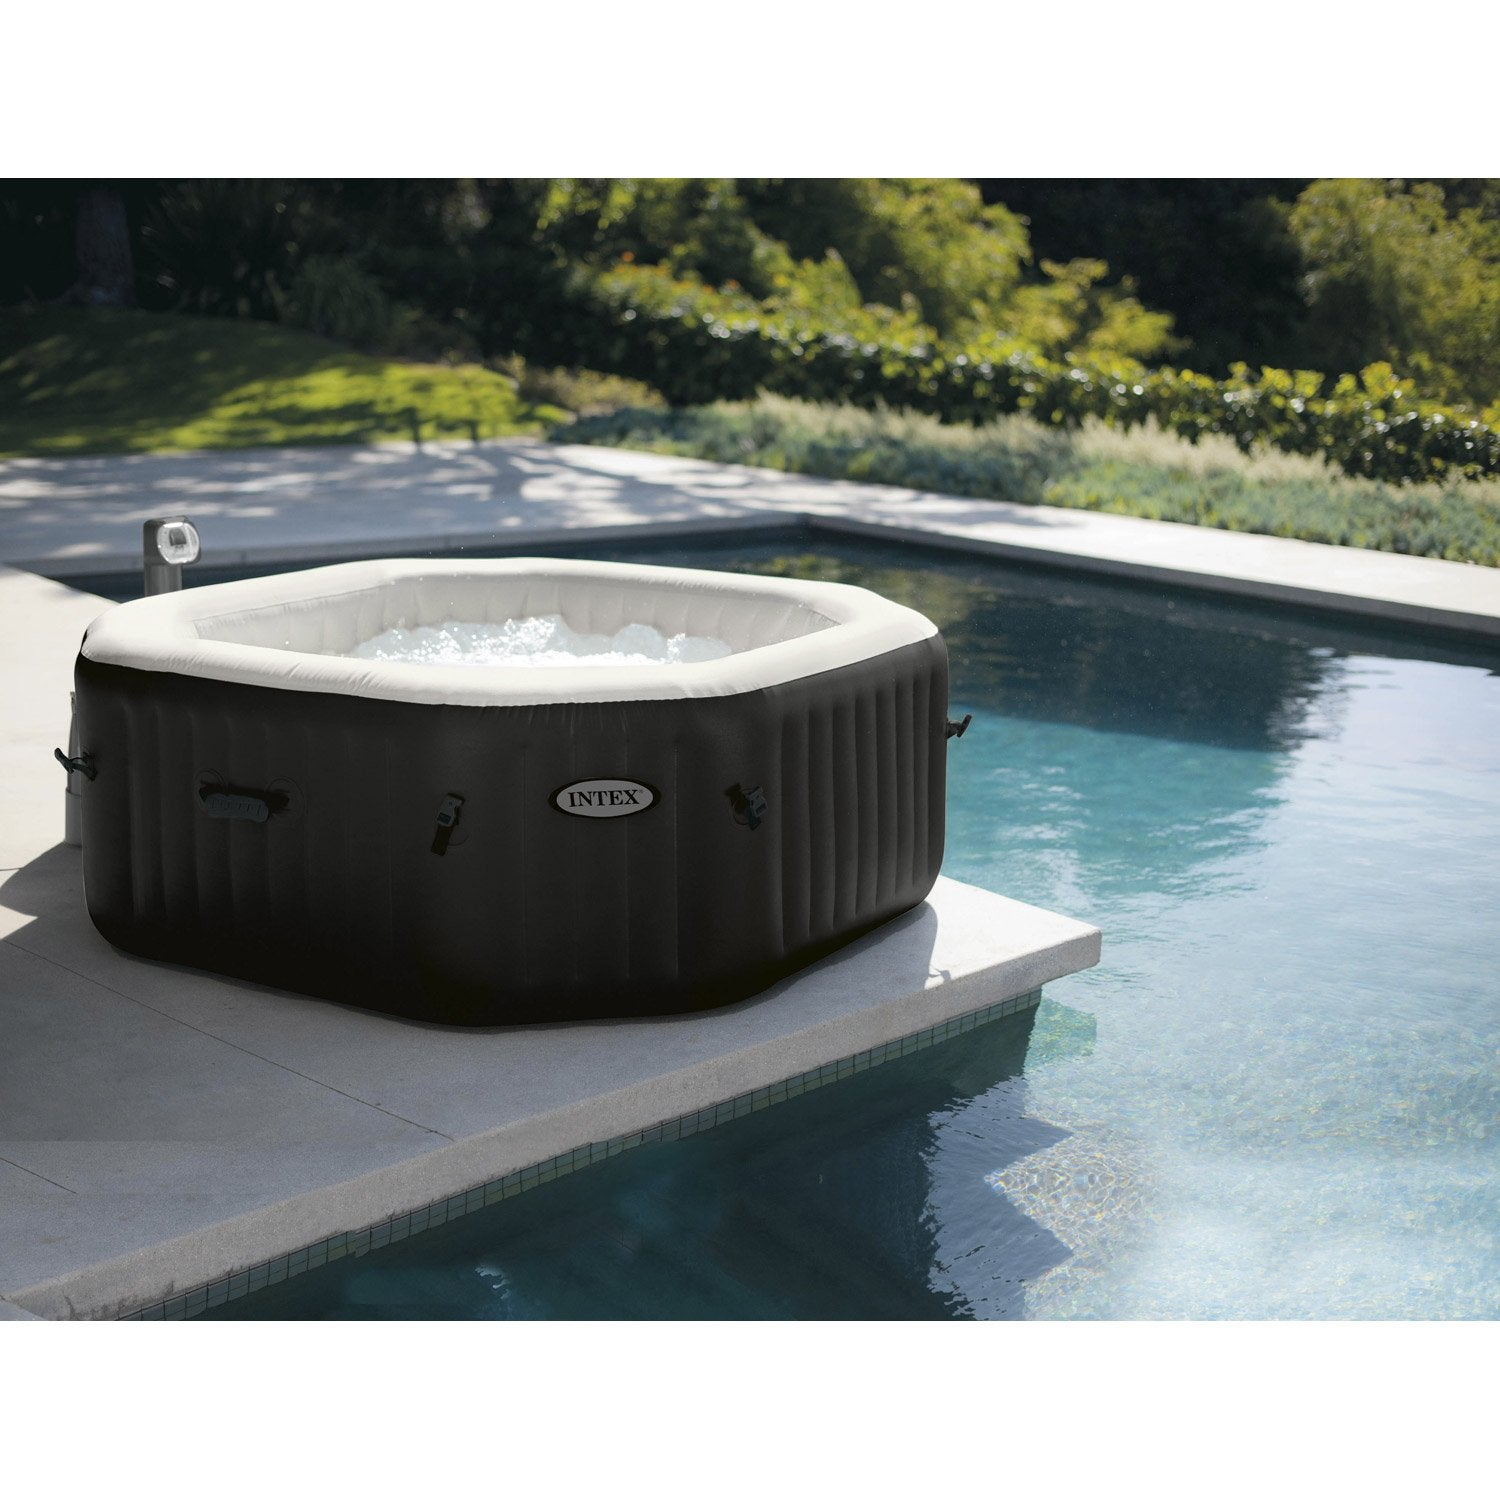 Spa gonflable intex purespa bulles octogonale 6 places assises leroy merlin - Prix d un spa exterieur ...